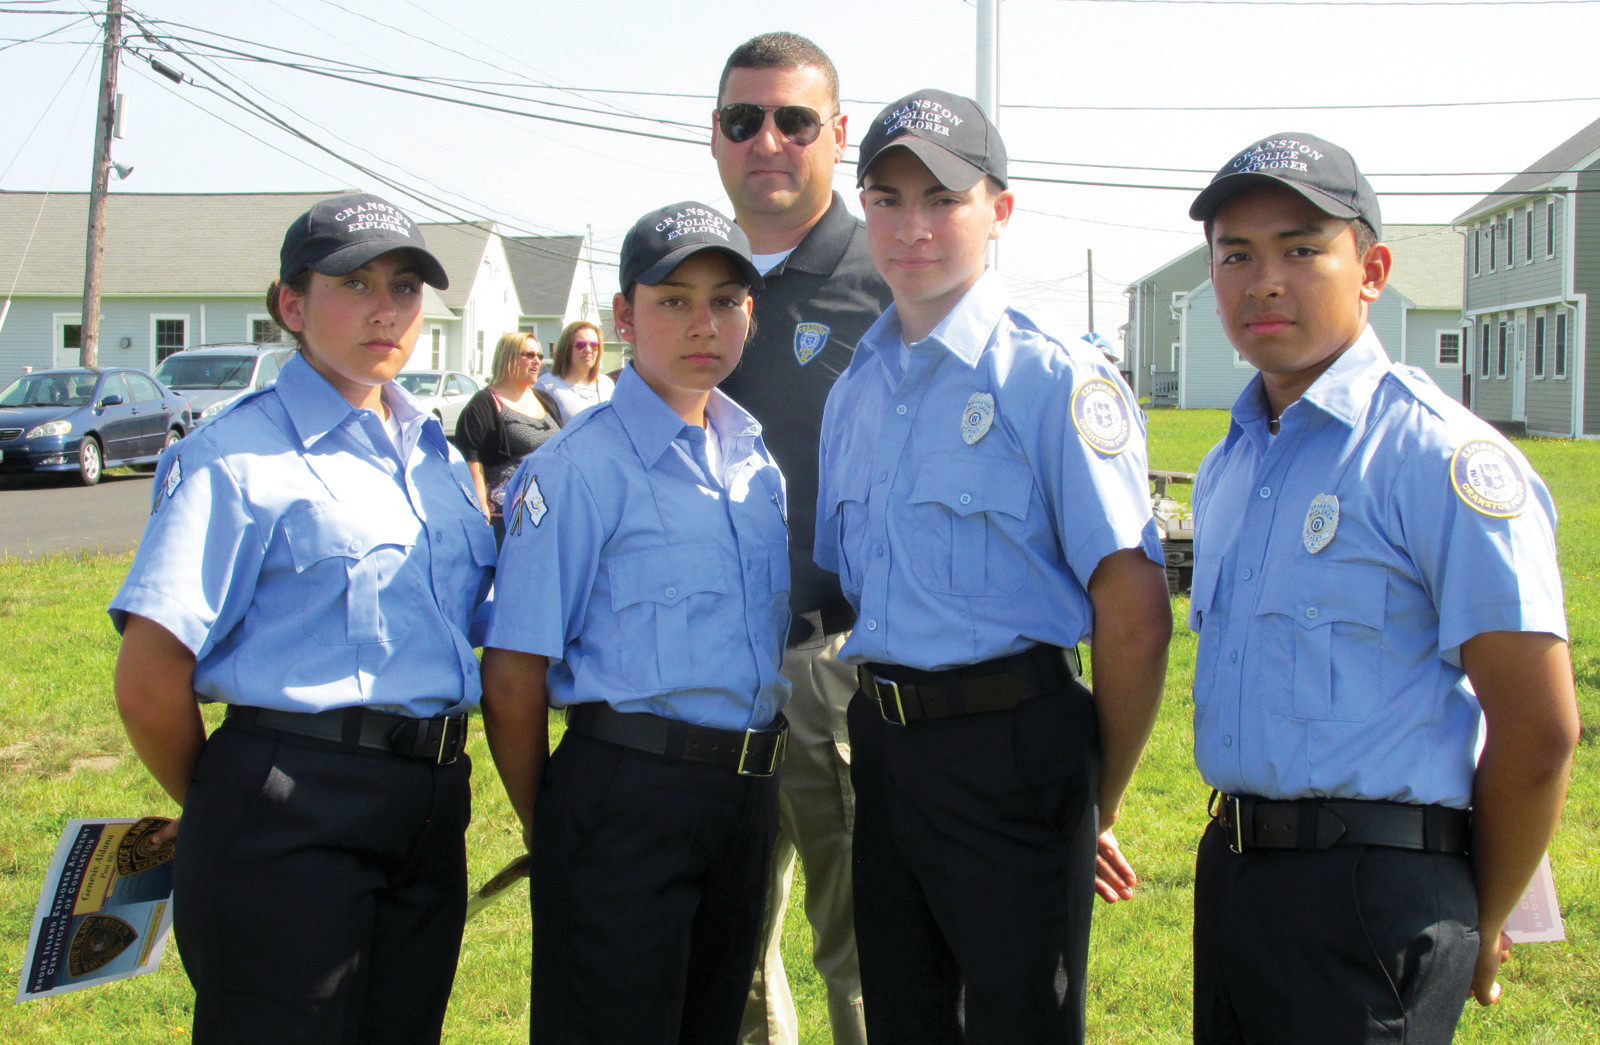 POST PRIDE: The Cranston Police Department's new Explorers Post 402 was well-presented at the recent RI Law Enforcement Training Academy by (from left) Cadets Genesis Aldana, Sofia Calderon, Inspector Robert Santagata, Eric Testa and Jesahias Quiroa.